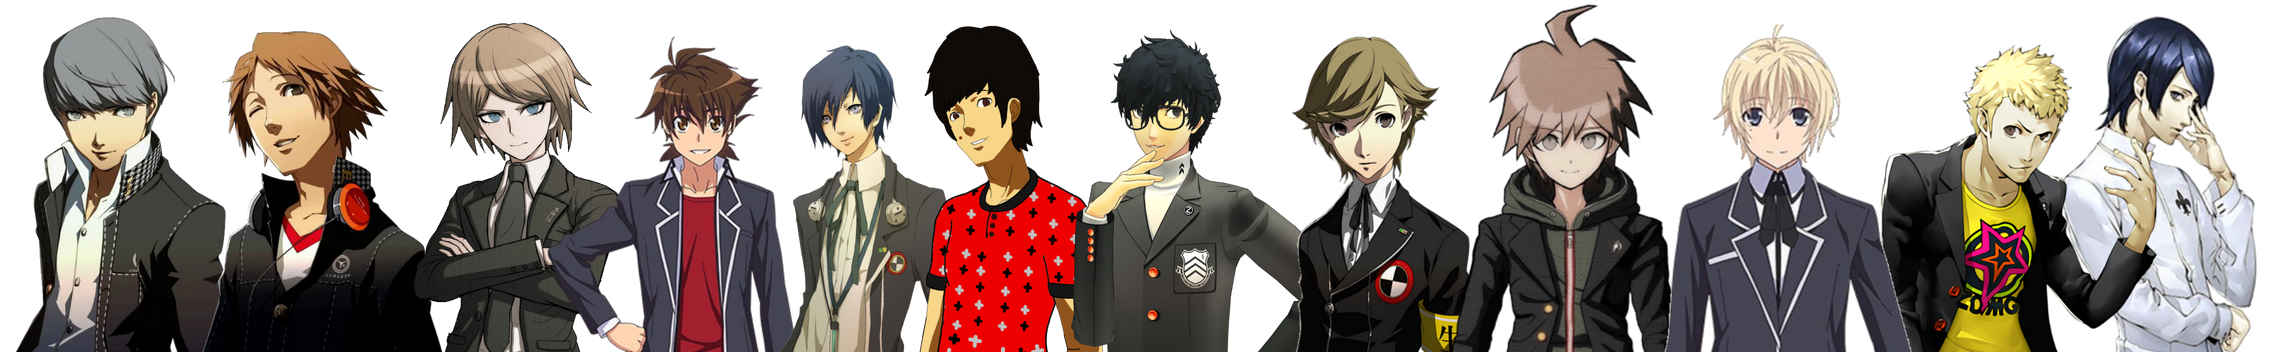 Adriano's Anime gang (Updated)